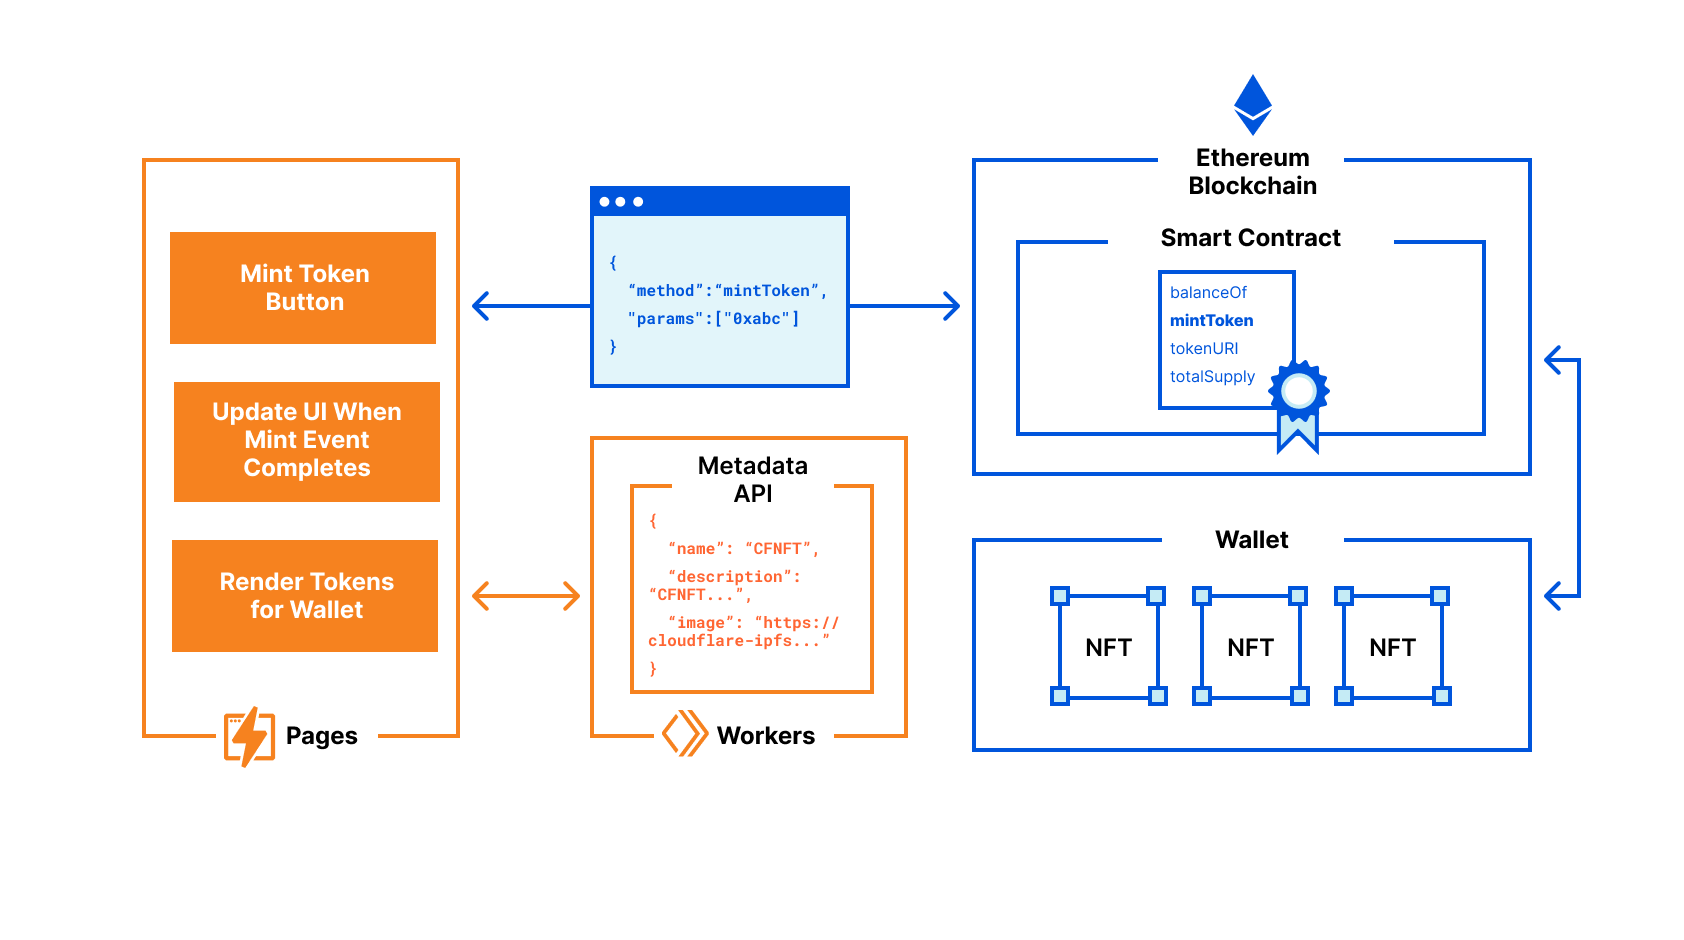 Architecture diagram of Cloudflare's open-source NFT project